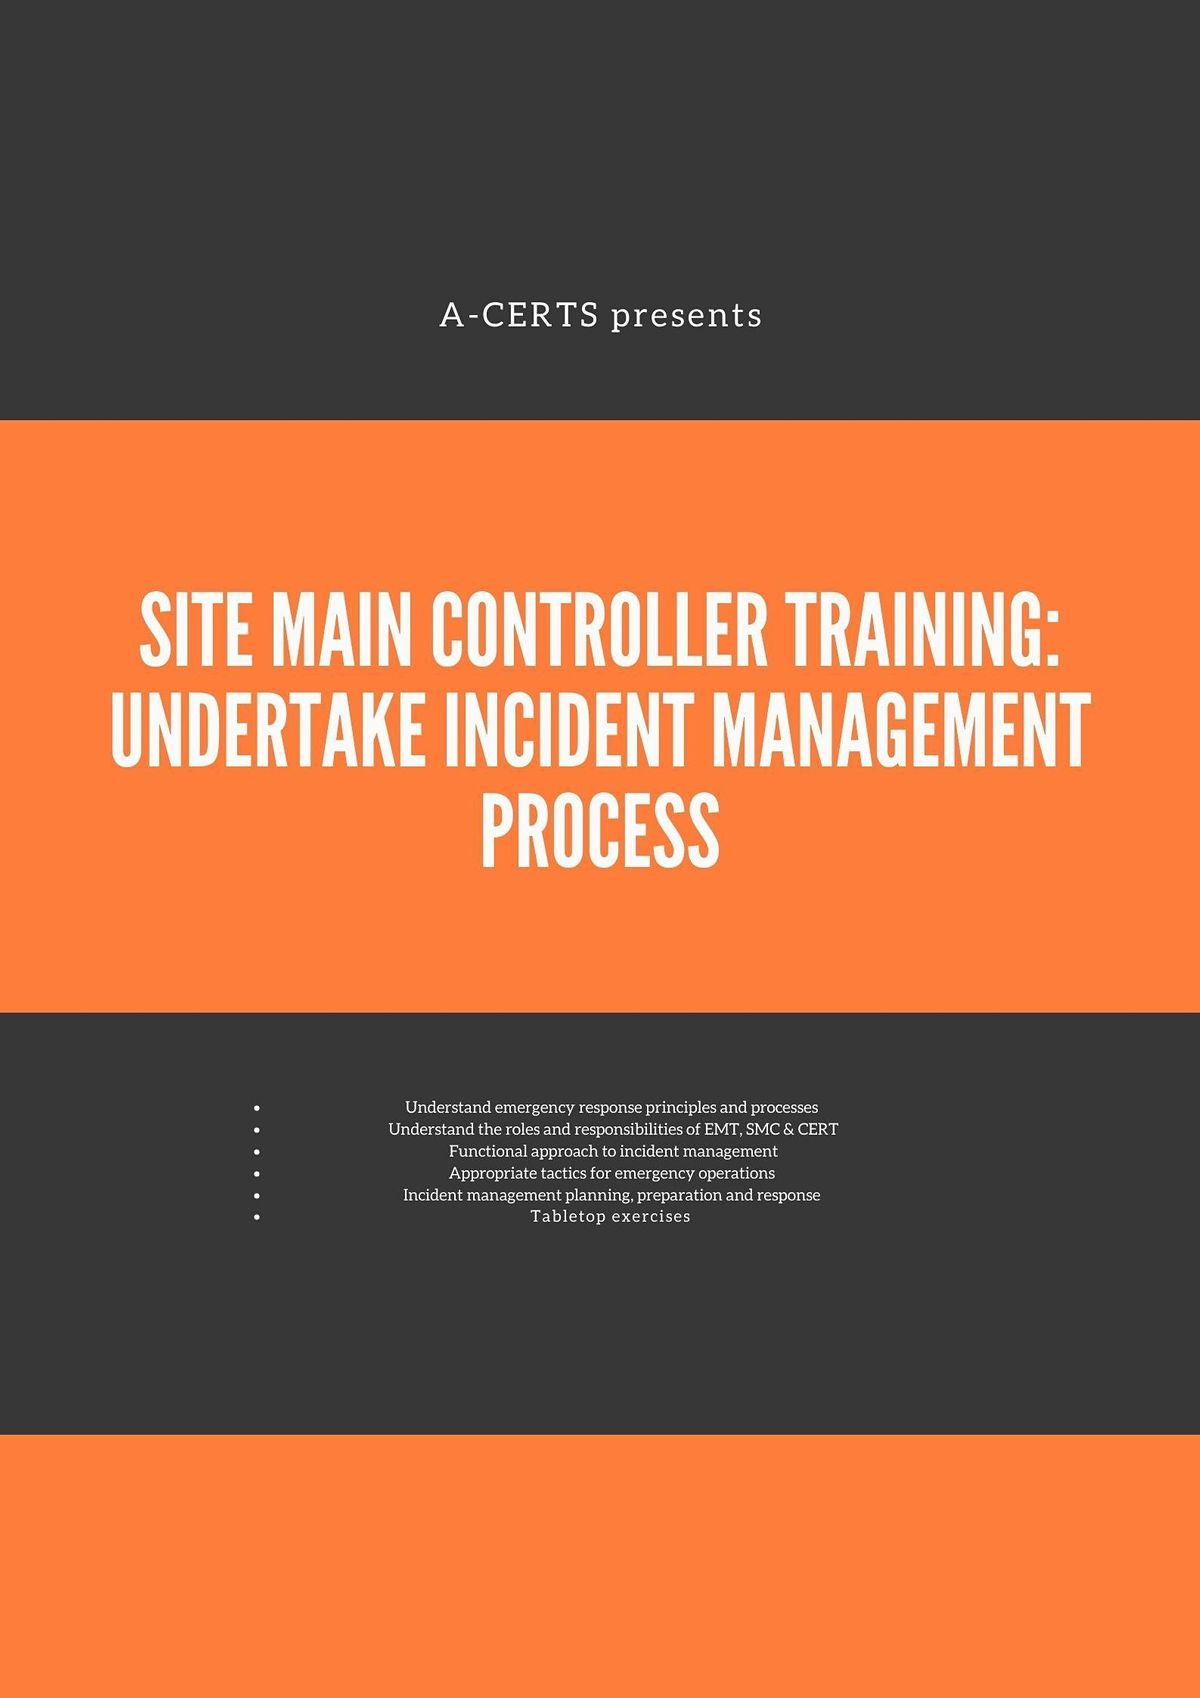 SMC Training: Undertake Incident Management Process (1 Day) Run 43, 10 November | Event in Singapore | AllEvents.in